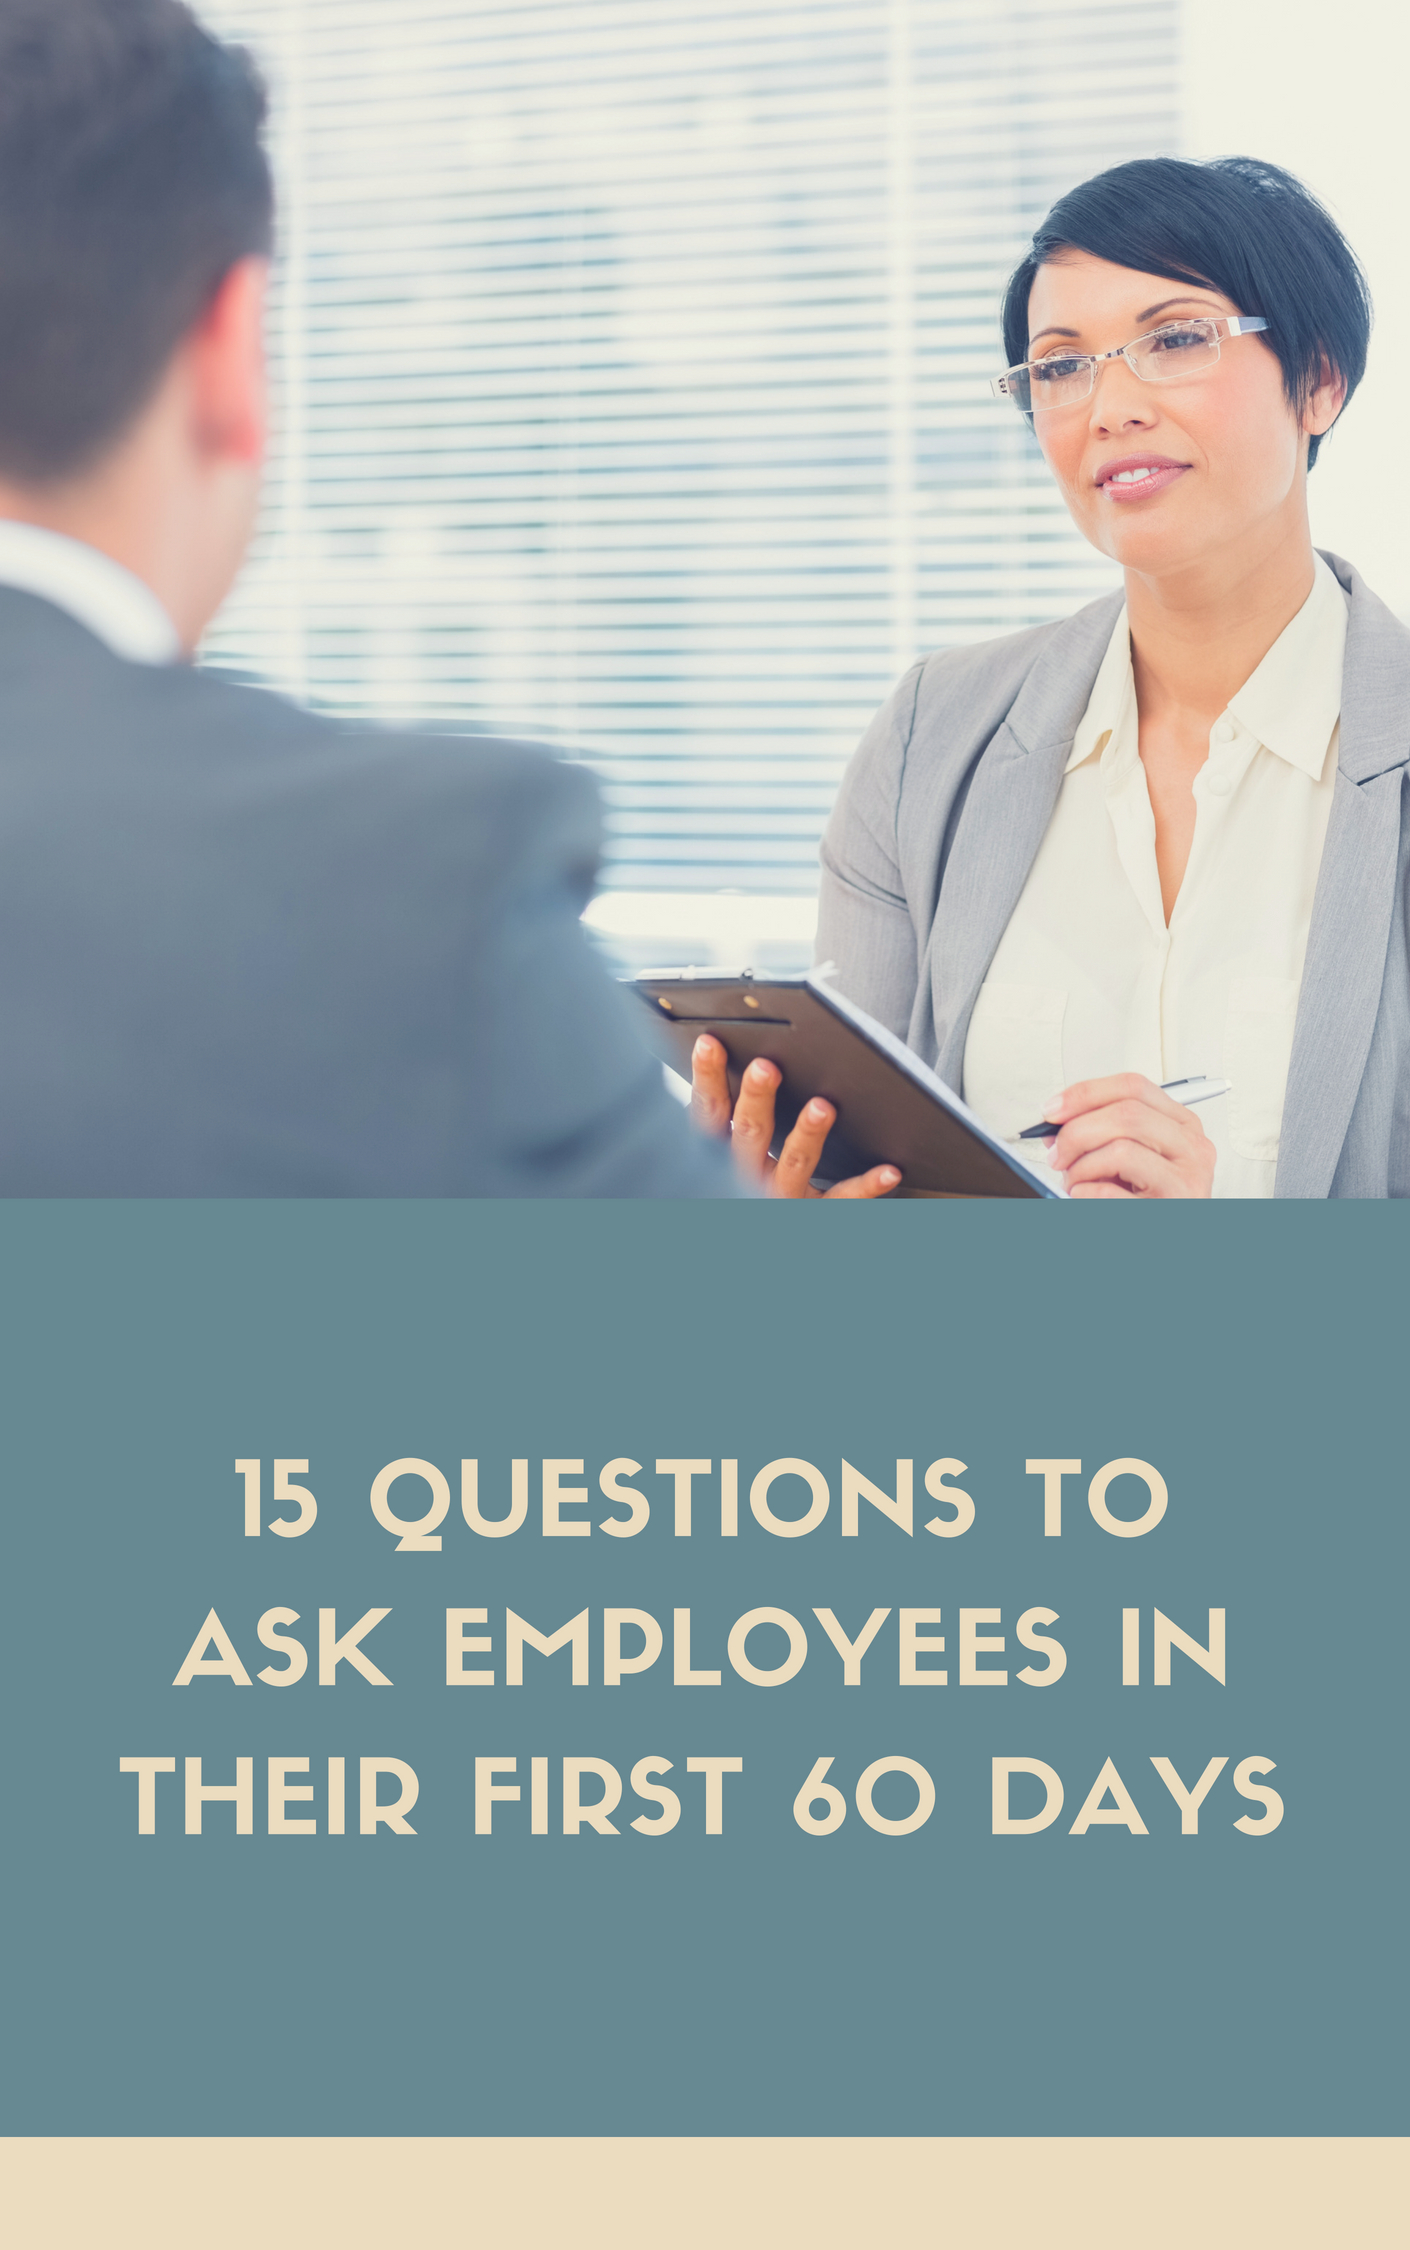 15 Questions to Ask Employees in Their First 60 Days